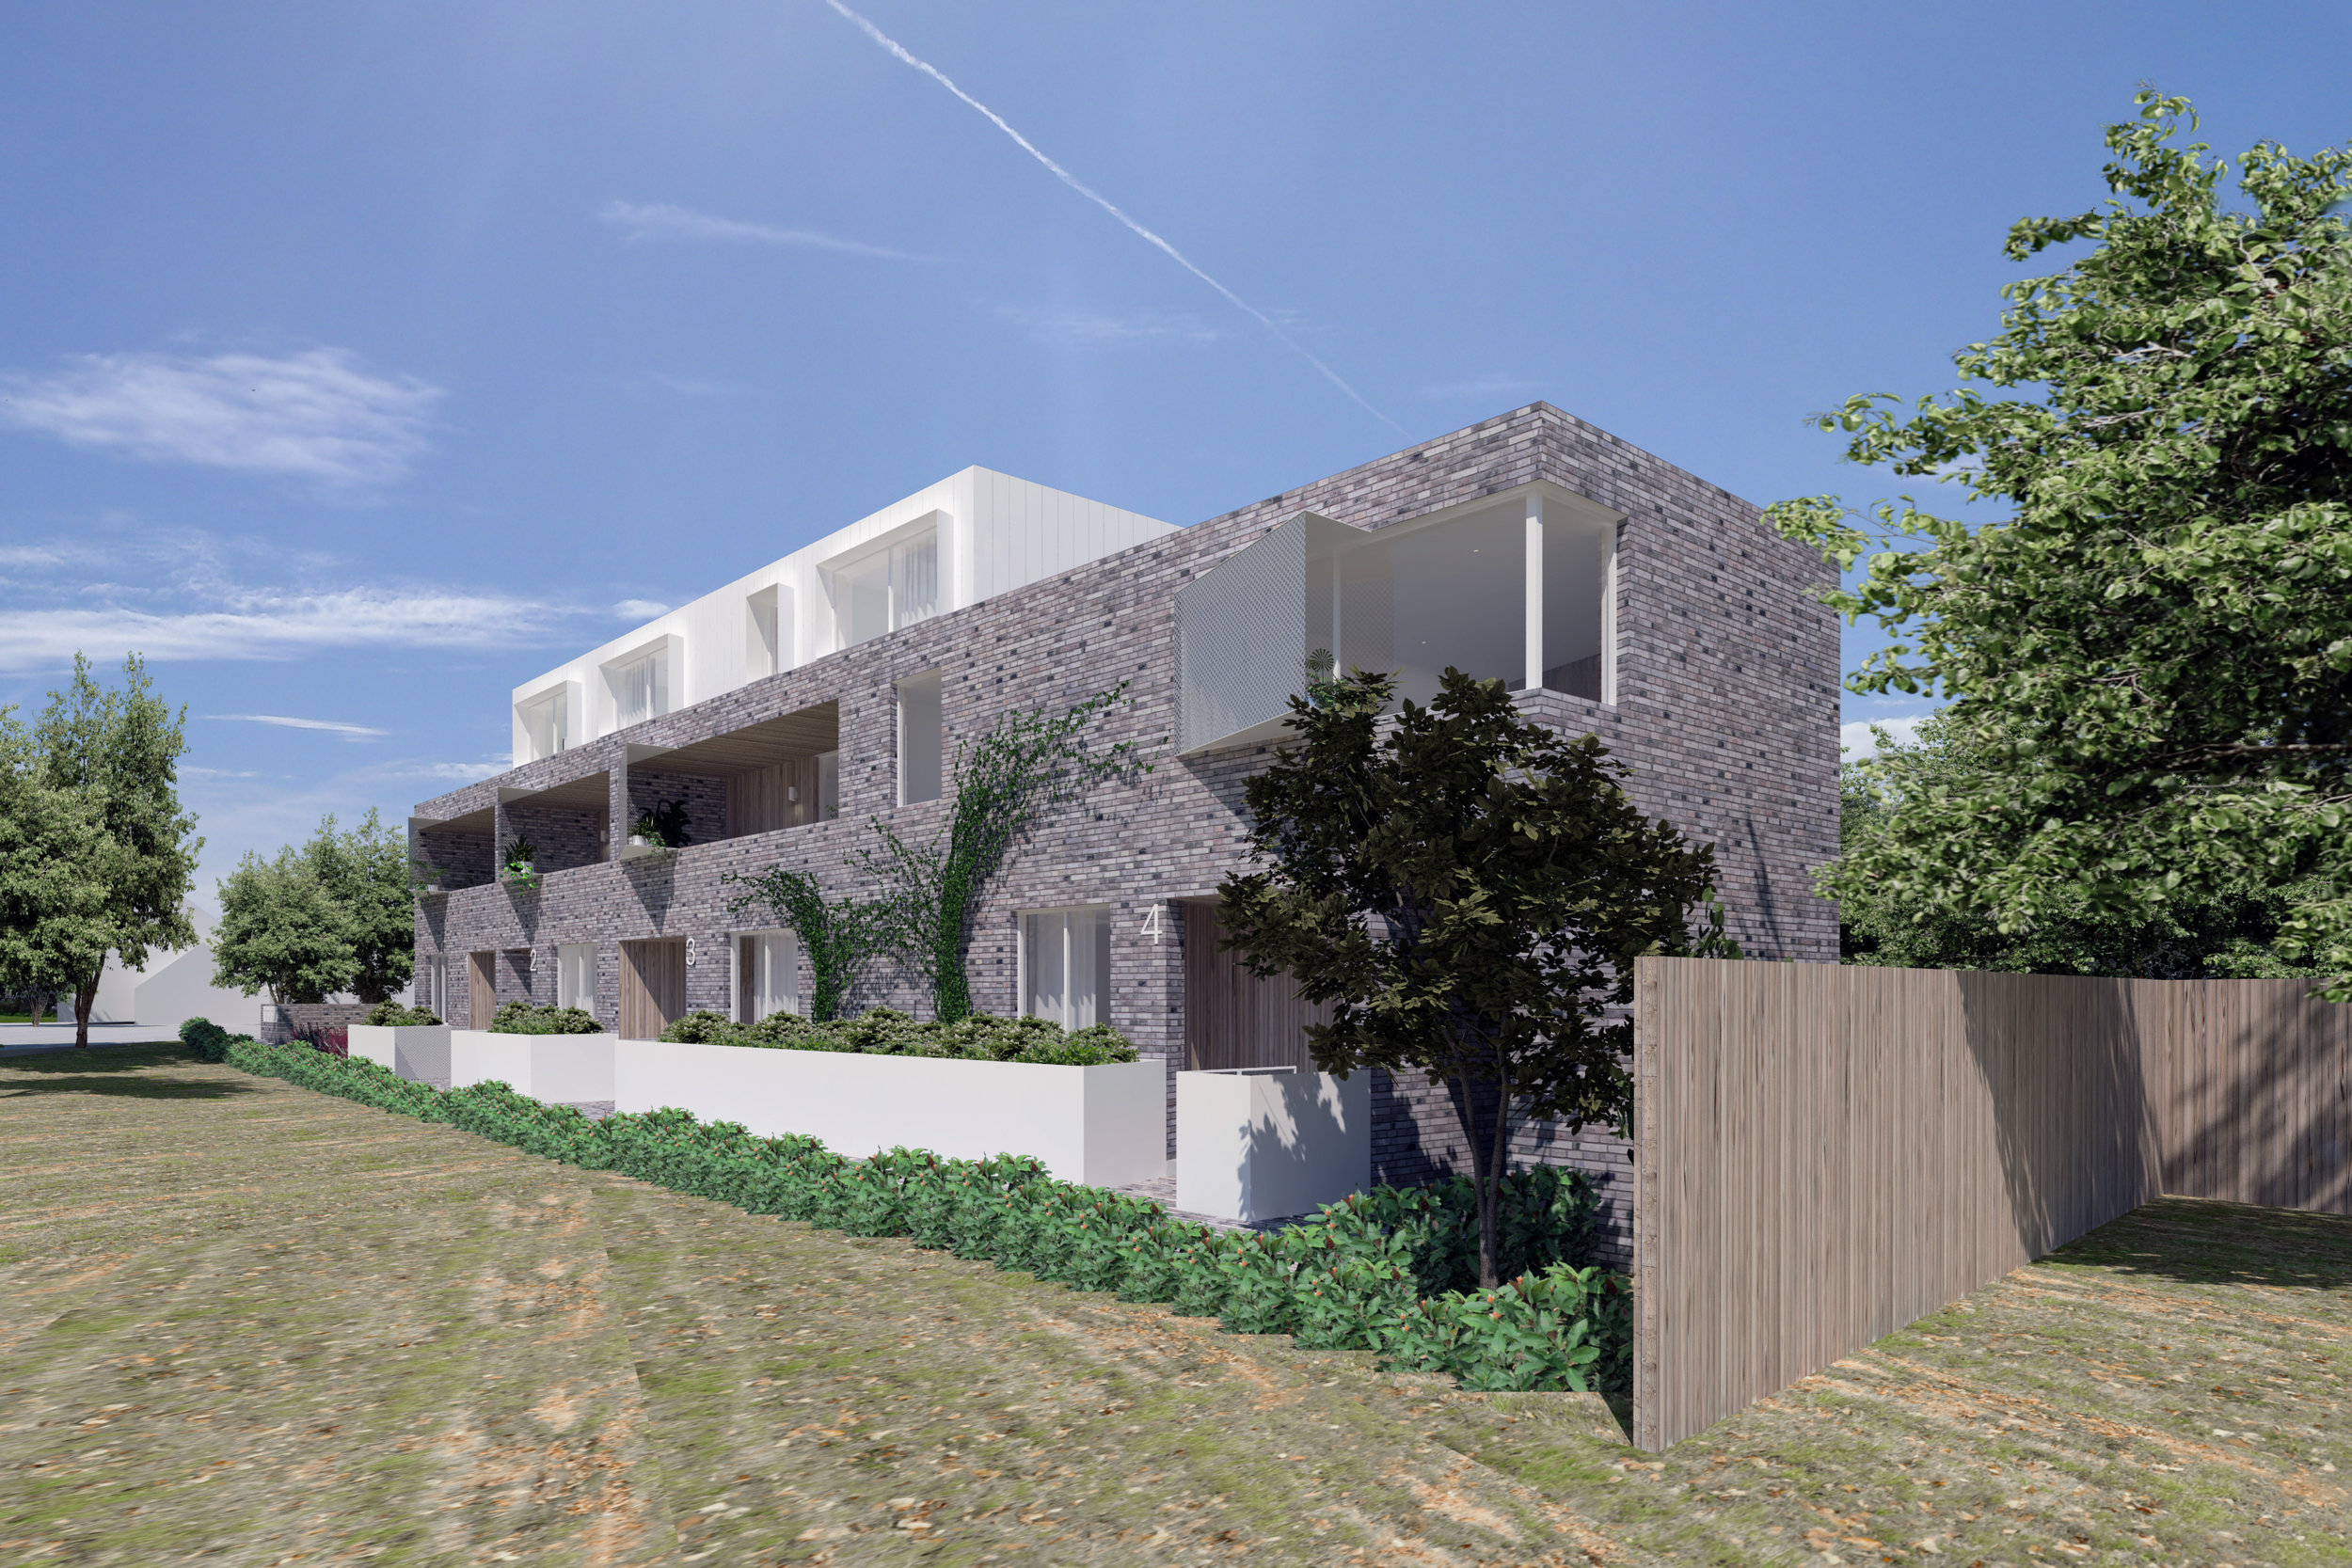 Pitch_Architecture_Ladrillos House_6